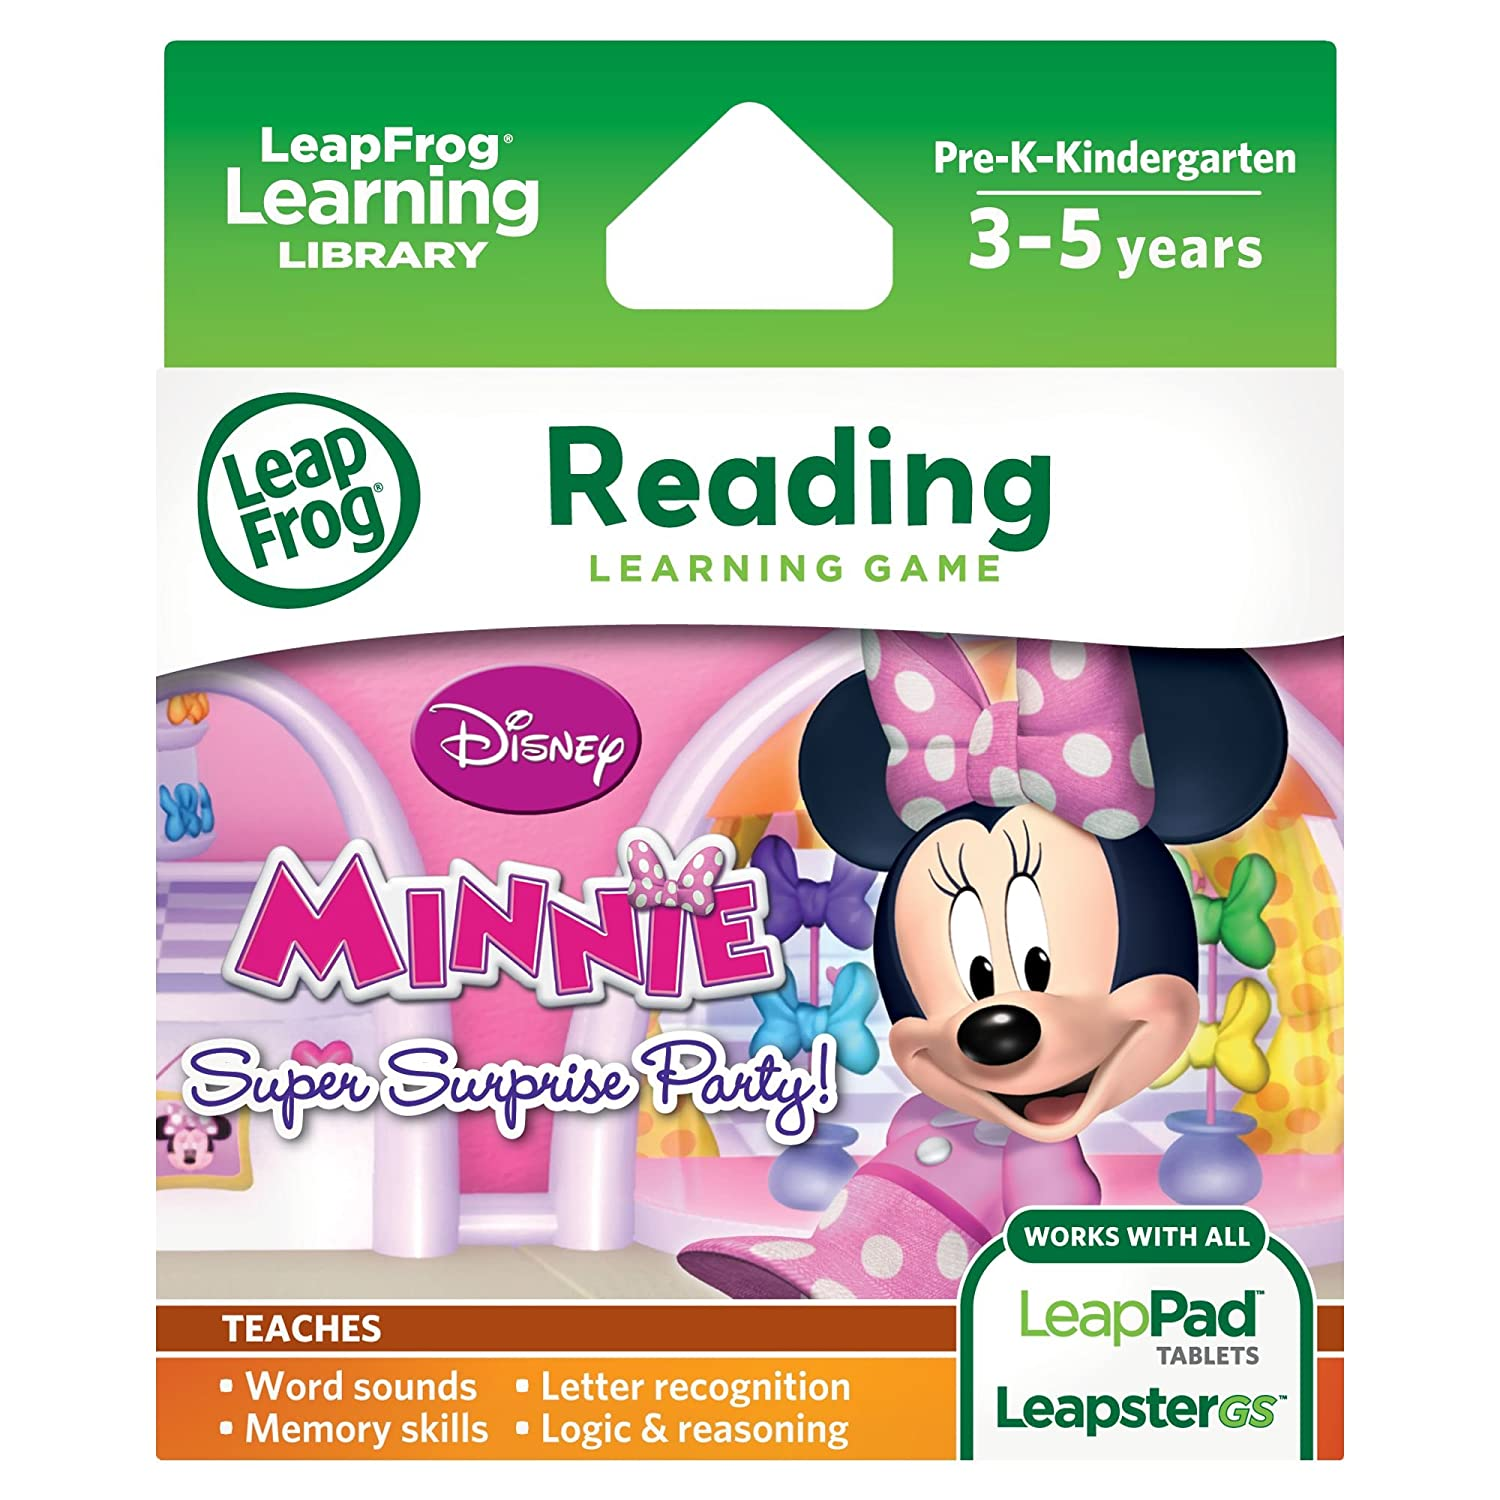 LeapFrog Disney Minnie's Bow tique Super Surprise Party Learning Game for LeapPad Platinum LeapPad Ultra LeapPad1 LeapPad2 LeapPad3 Leapster Explorer LeapsterGS Explorer